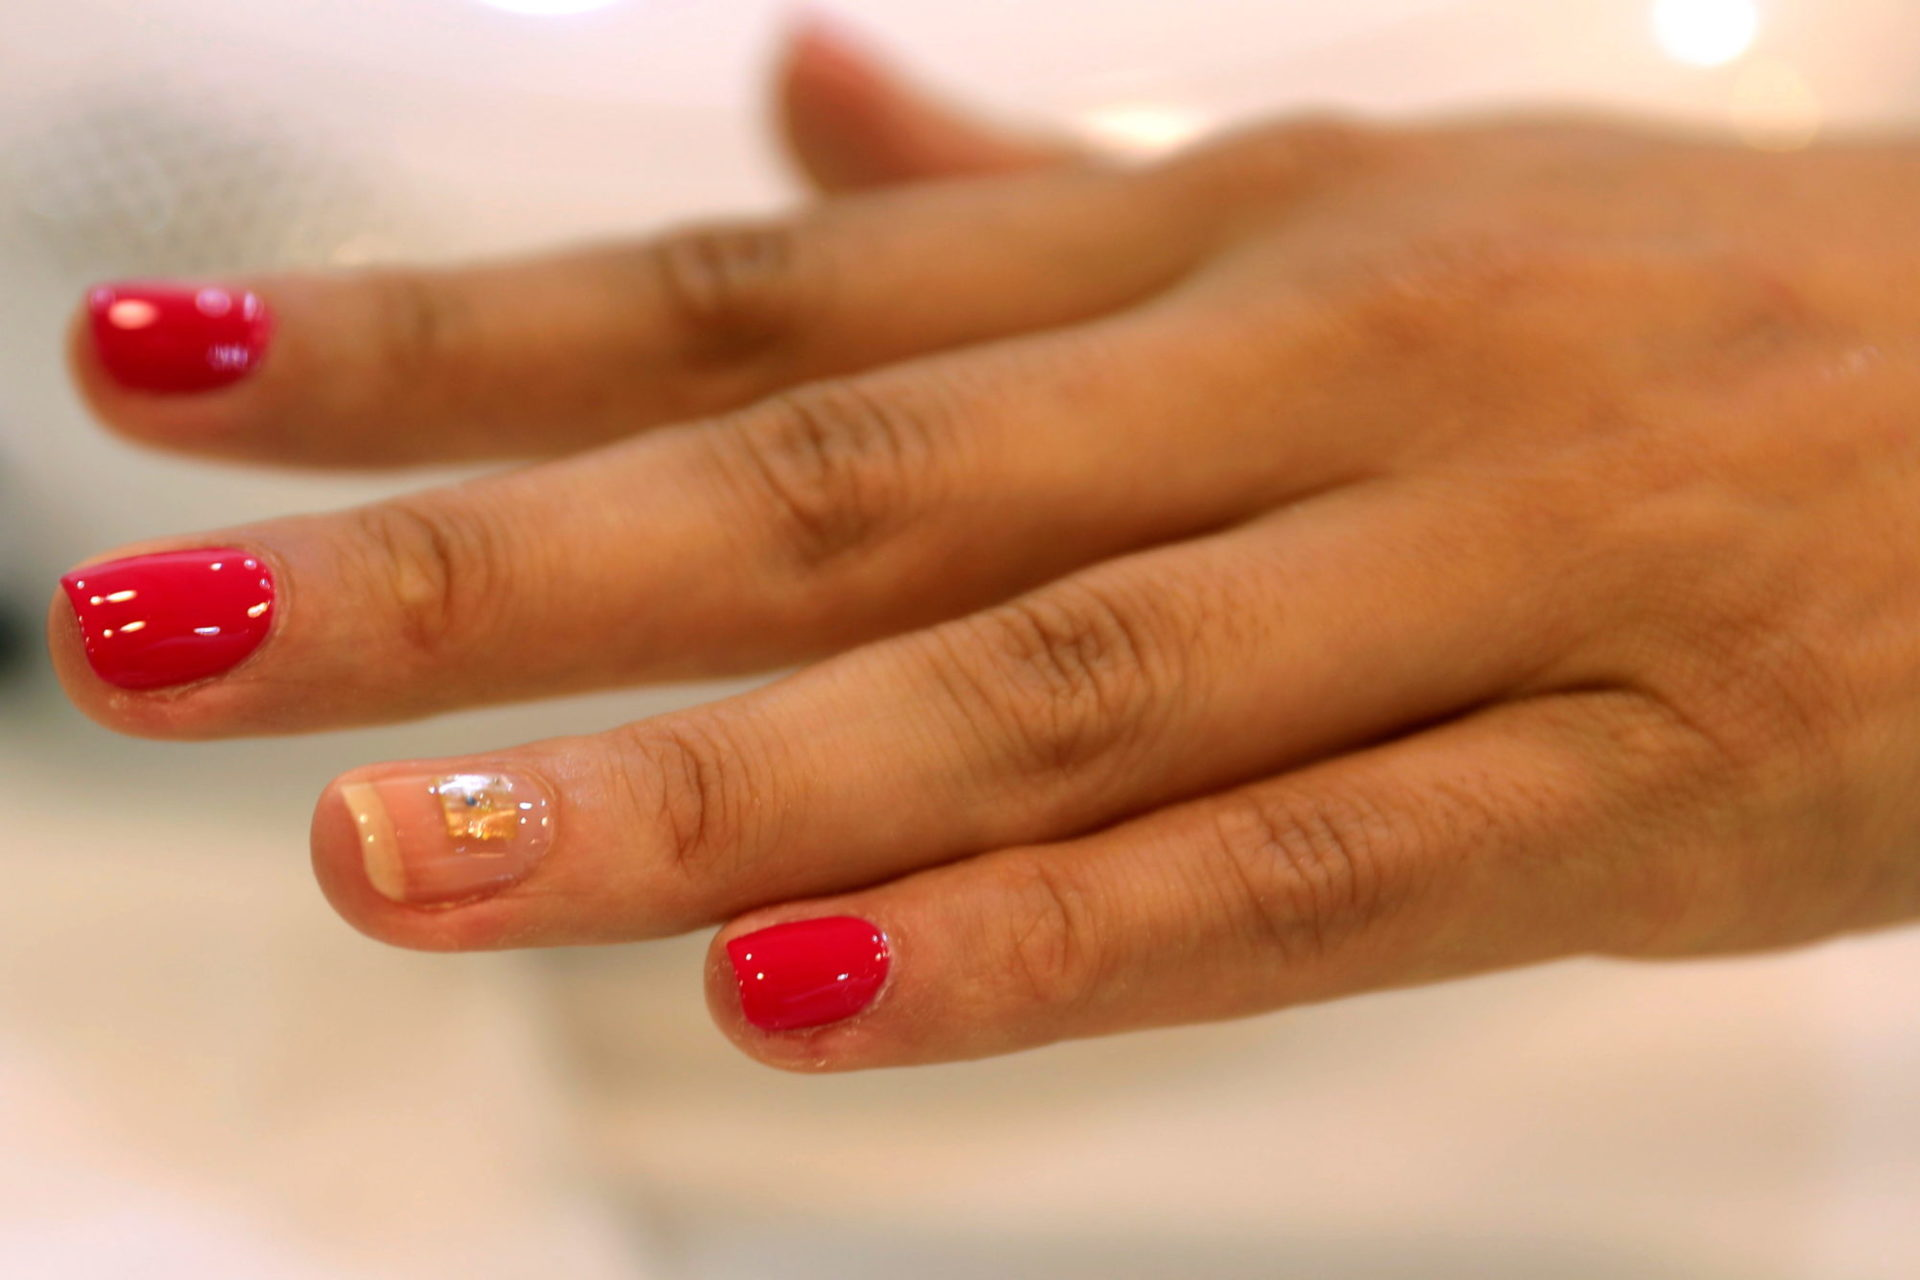 A customer gets a microchip, containing personal data, attached to one of her nails at Lanour Beauty Lounge in Dubai